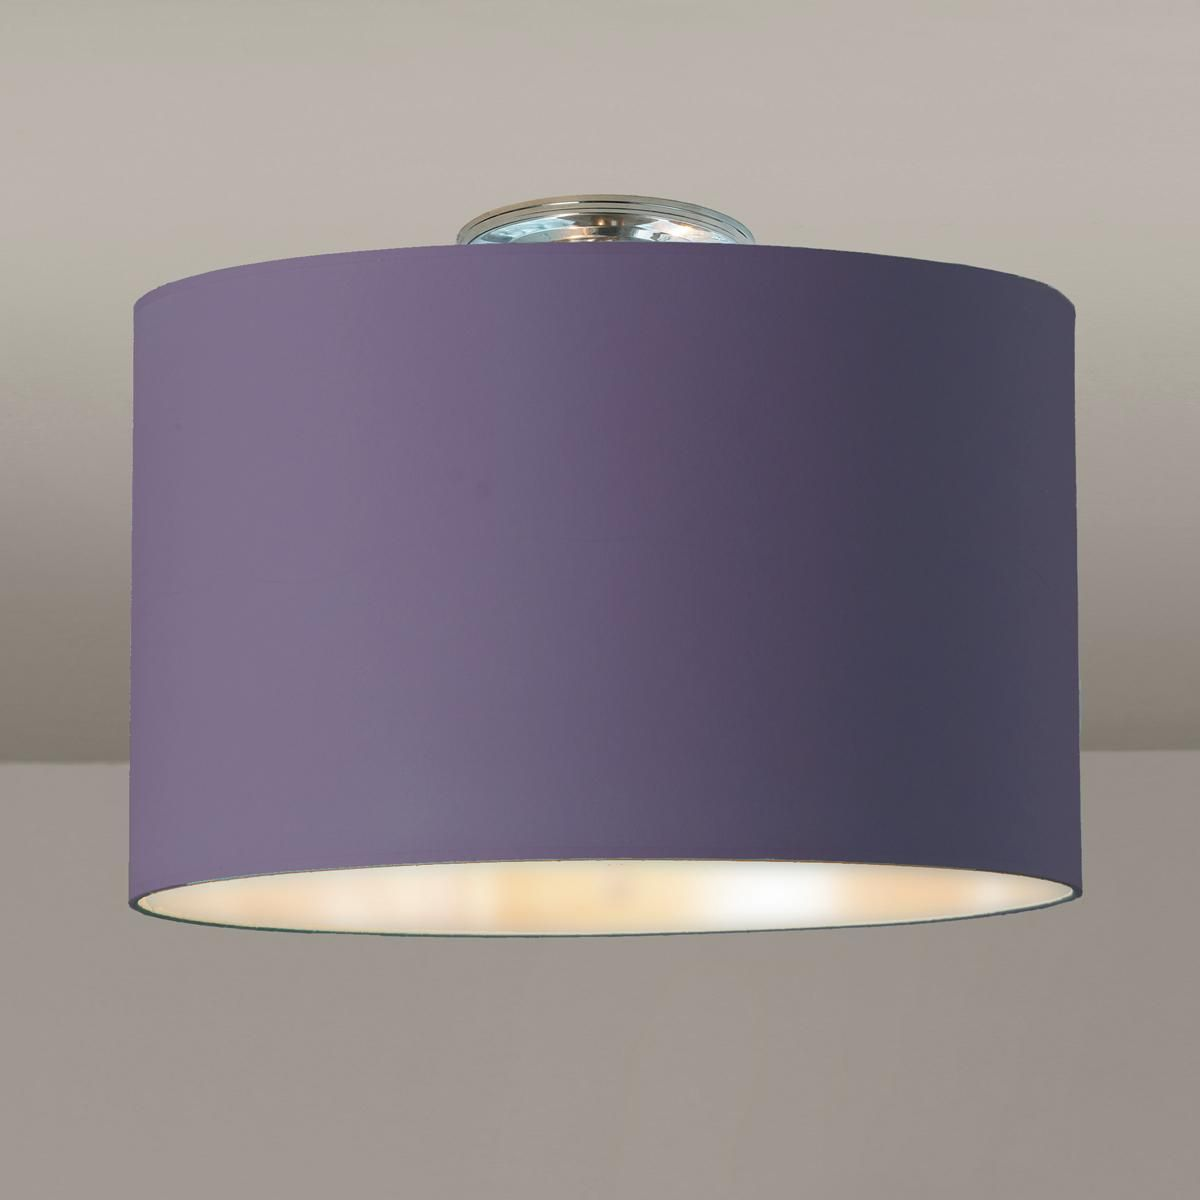 Colored Drum Shade Ceiling Light With